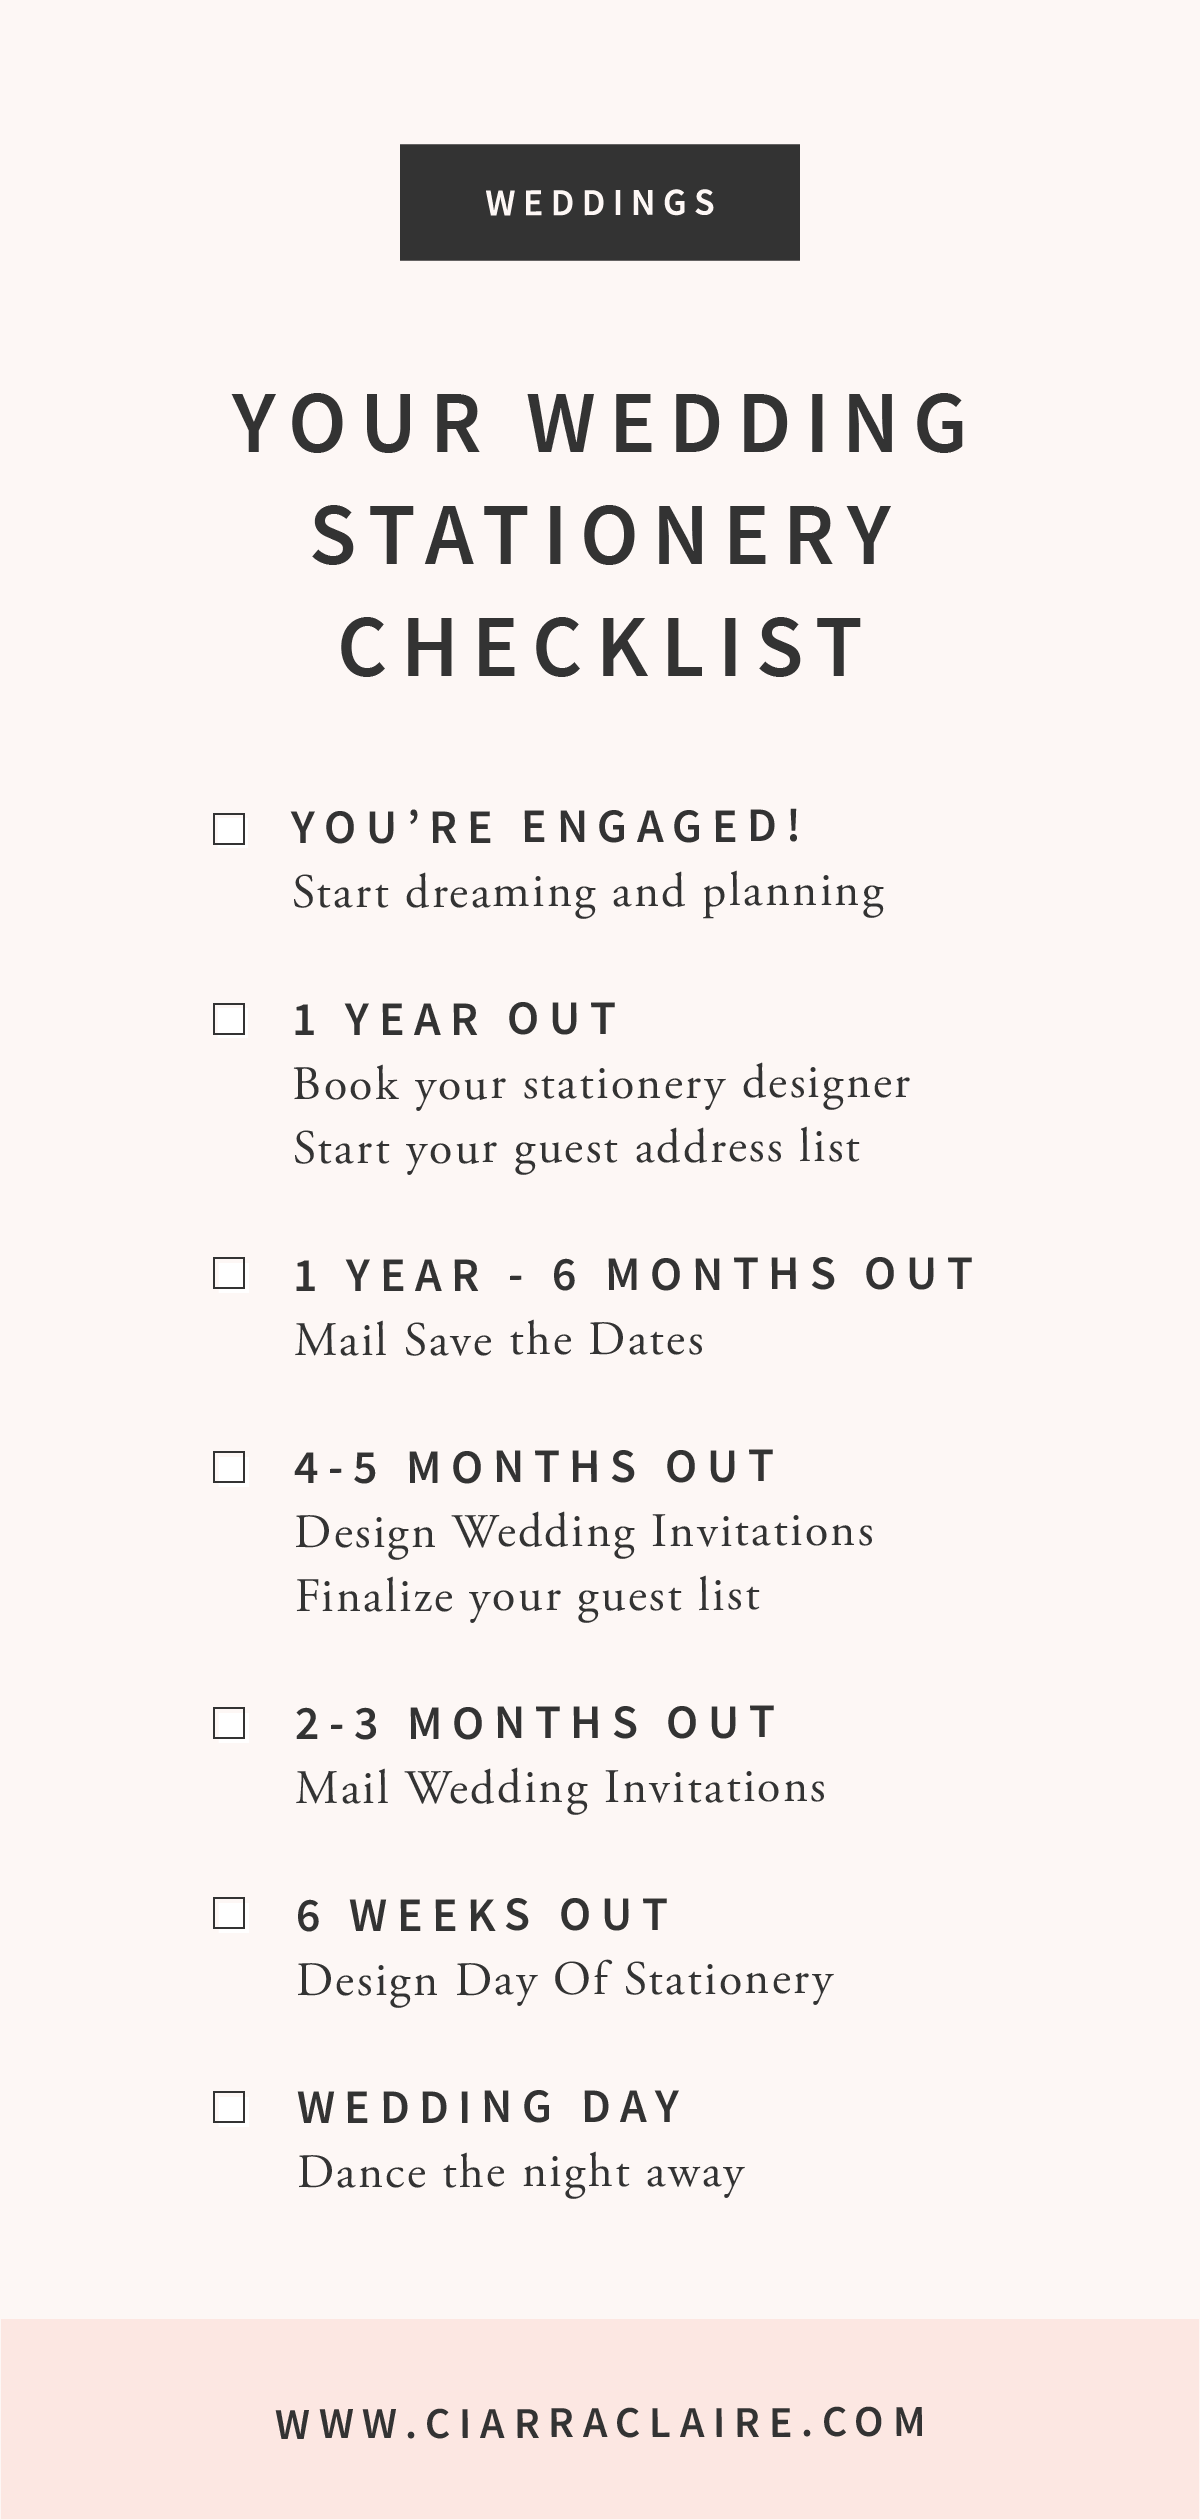 A timeline and checklist guide for your wedding invitations and day of stationery.